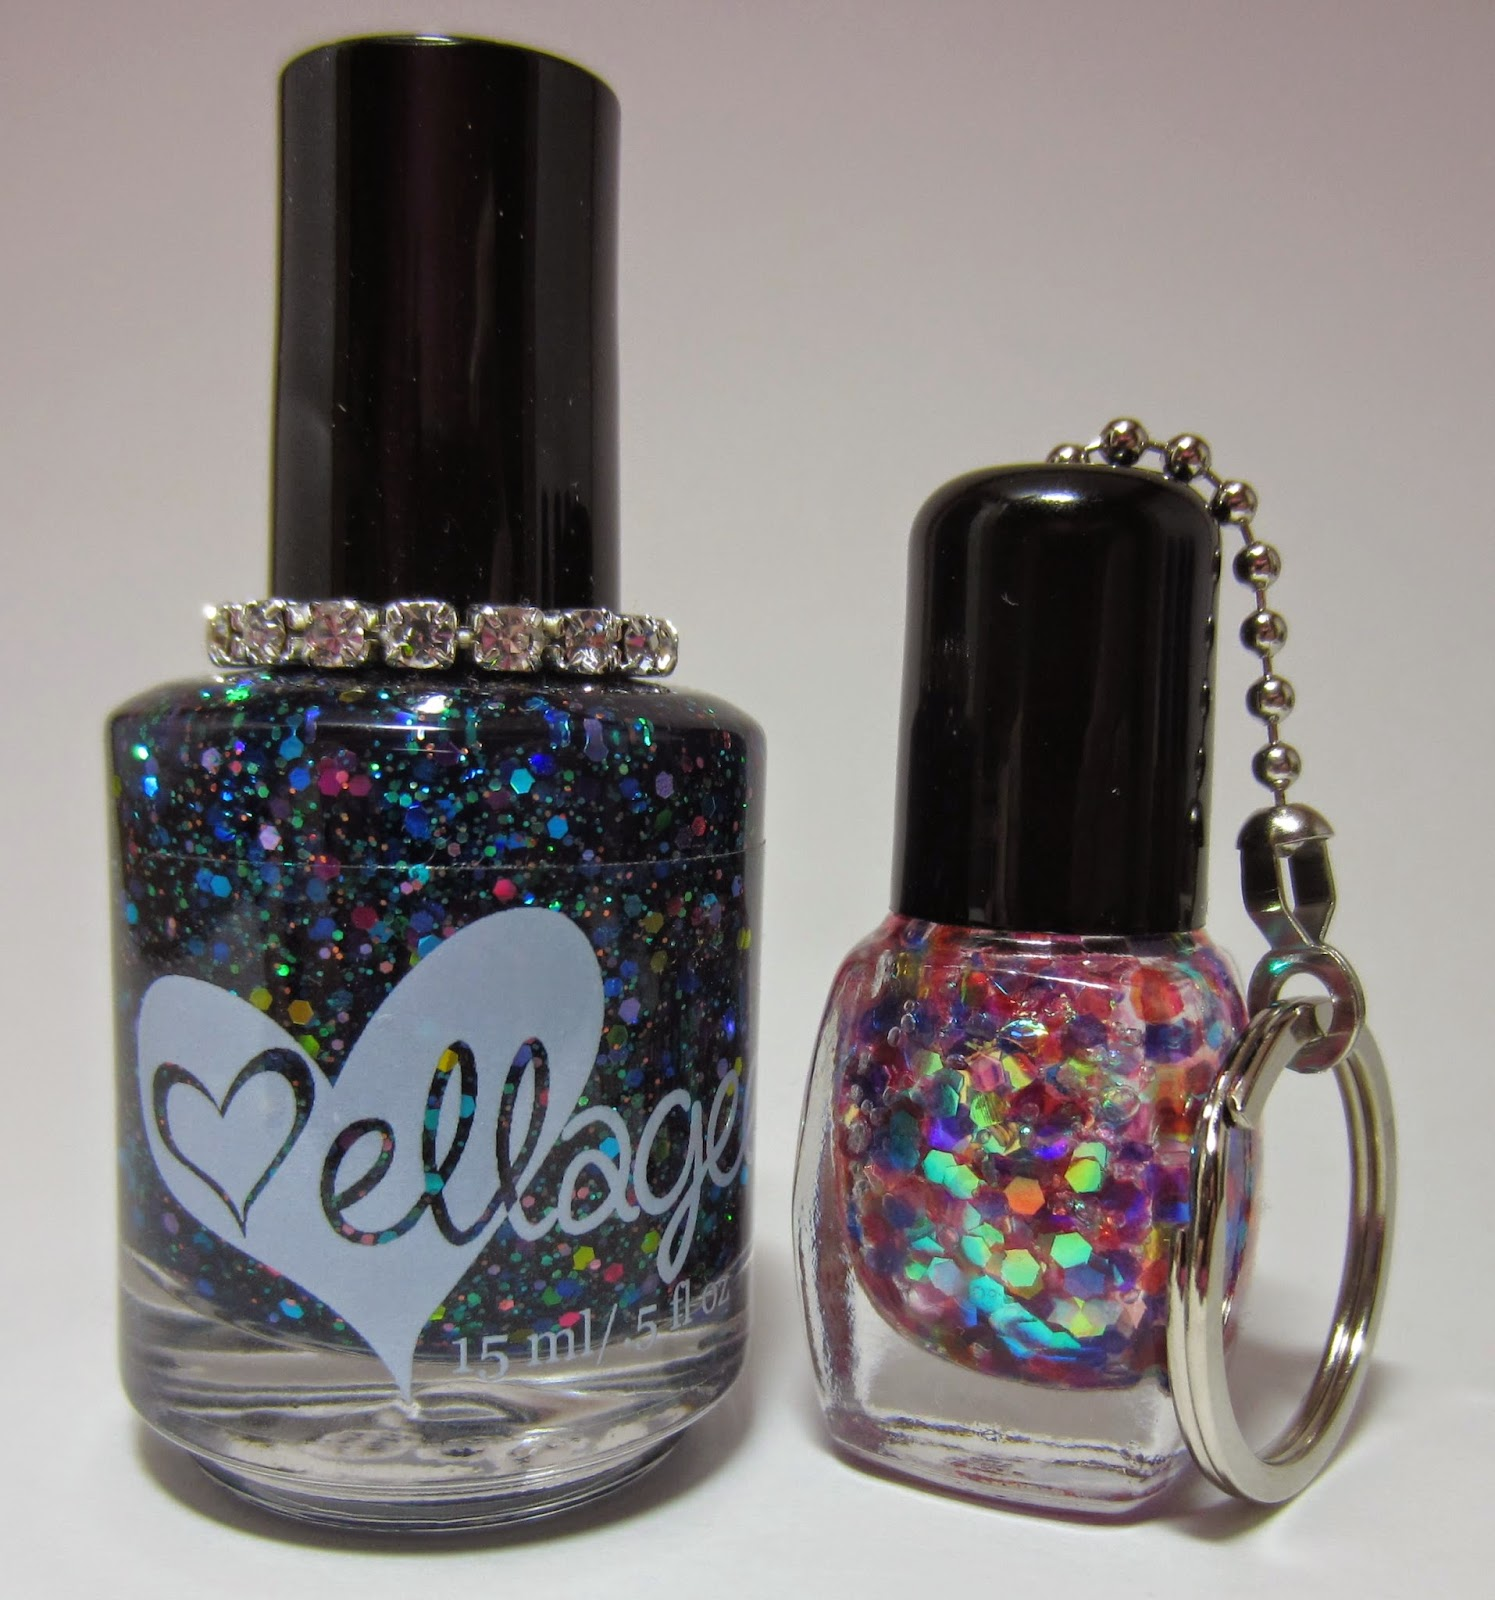 Ellagee Group On Facebook And I Was Able To Snag This Gorgeous Custom Polish As Well A Cute Nail Bottle Keychain Let S Take Look